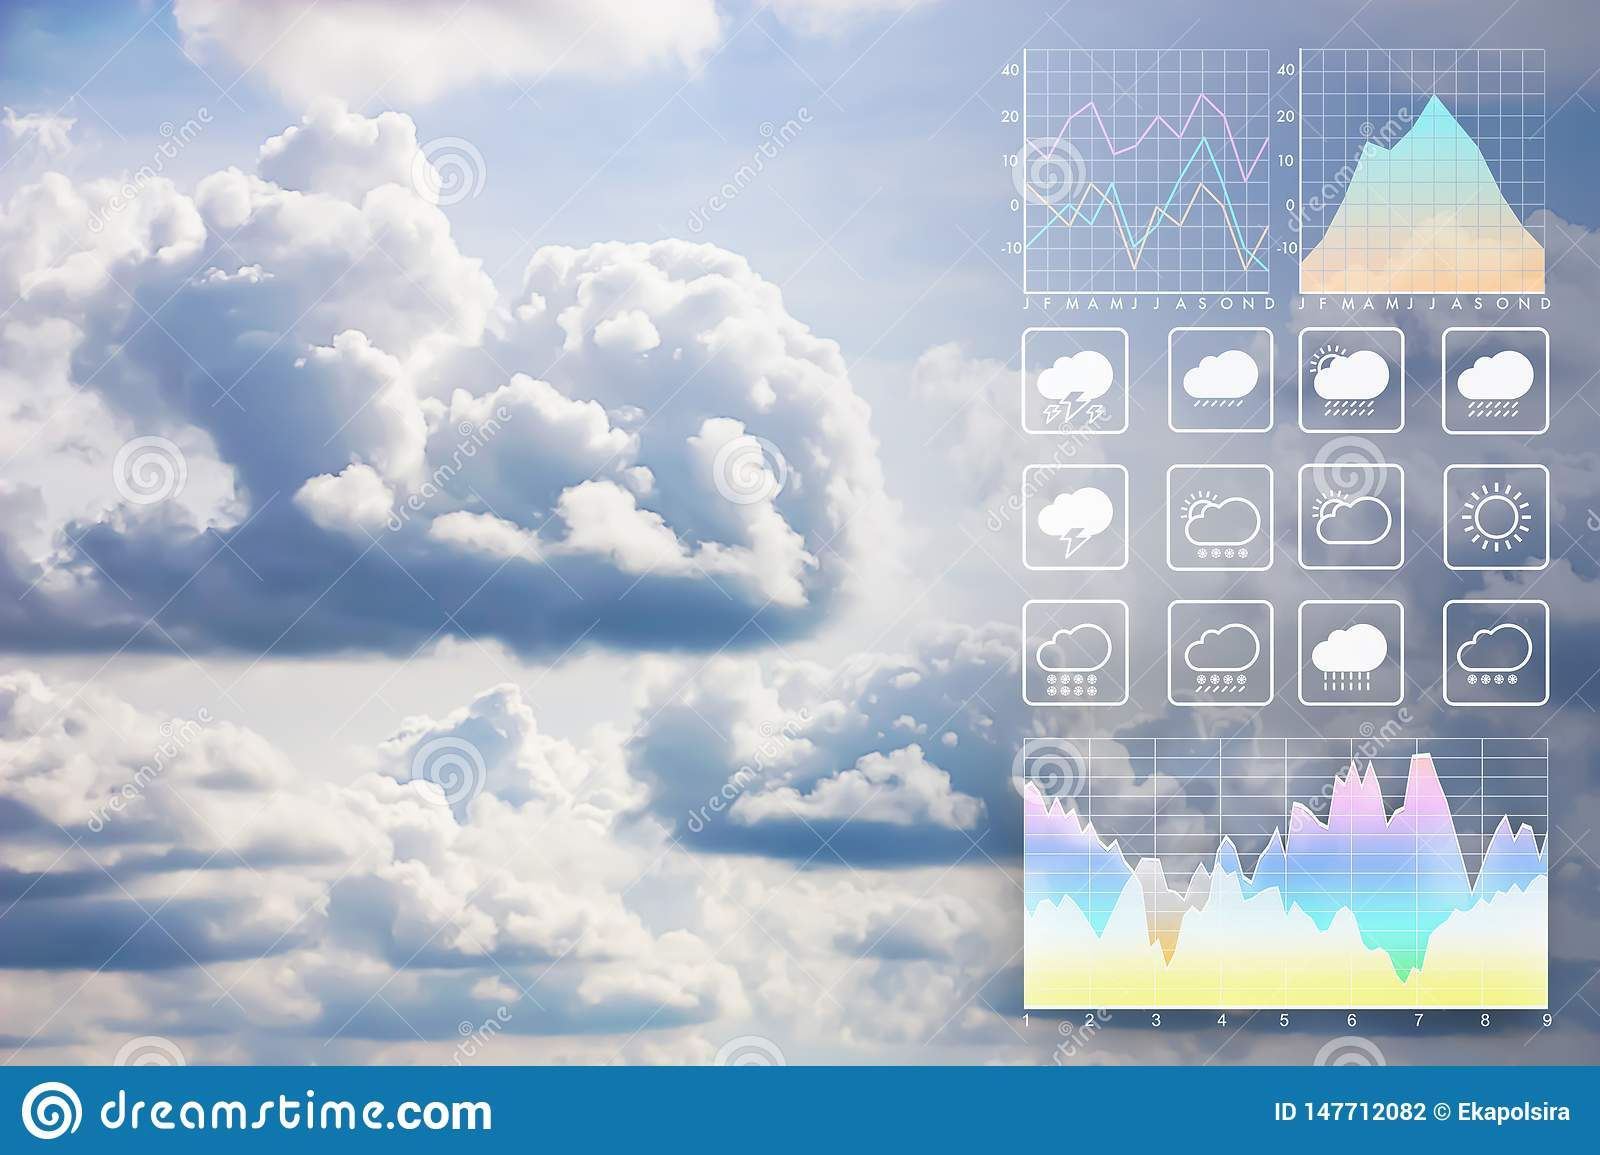 Weather Forecast Presentation Report Background With Beautiful Clouds Stock Photo Image Of Light Plane 147712082